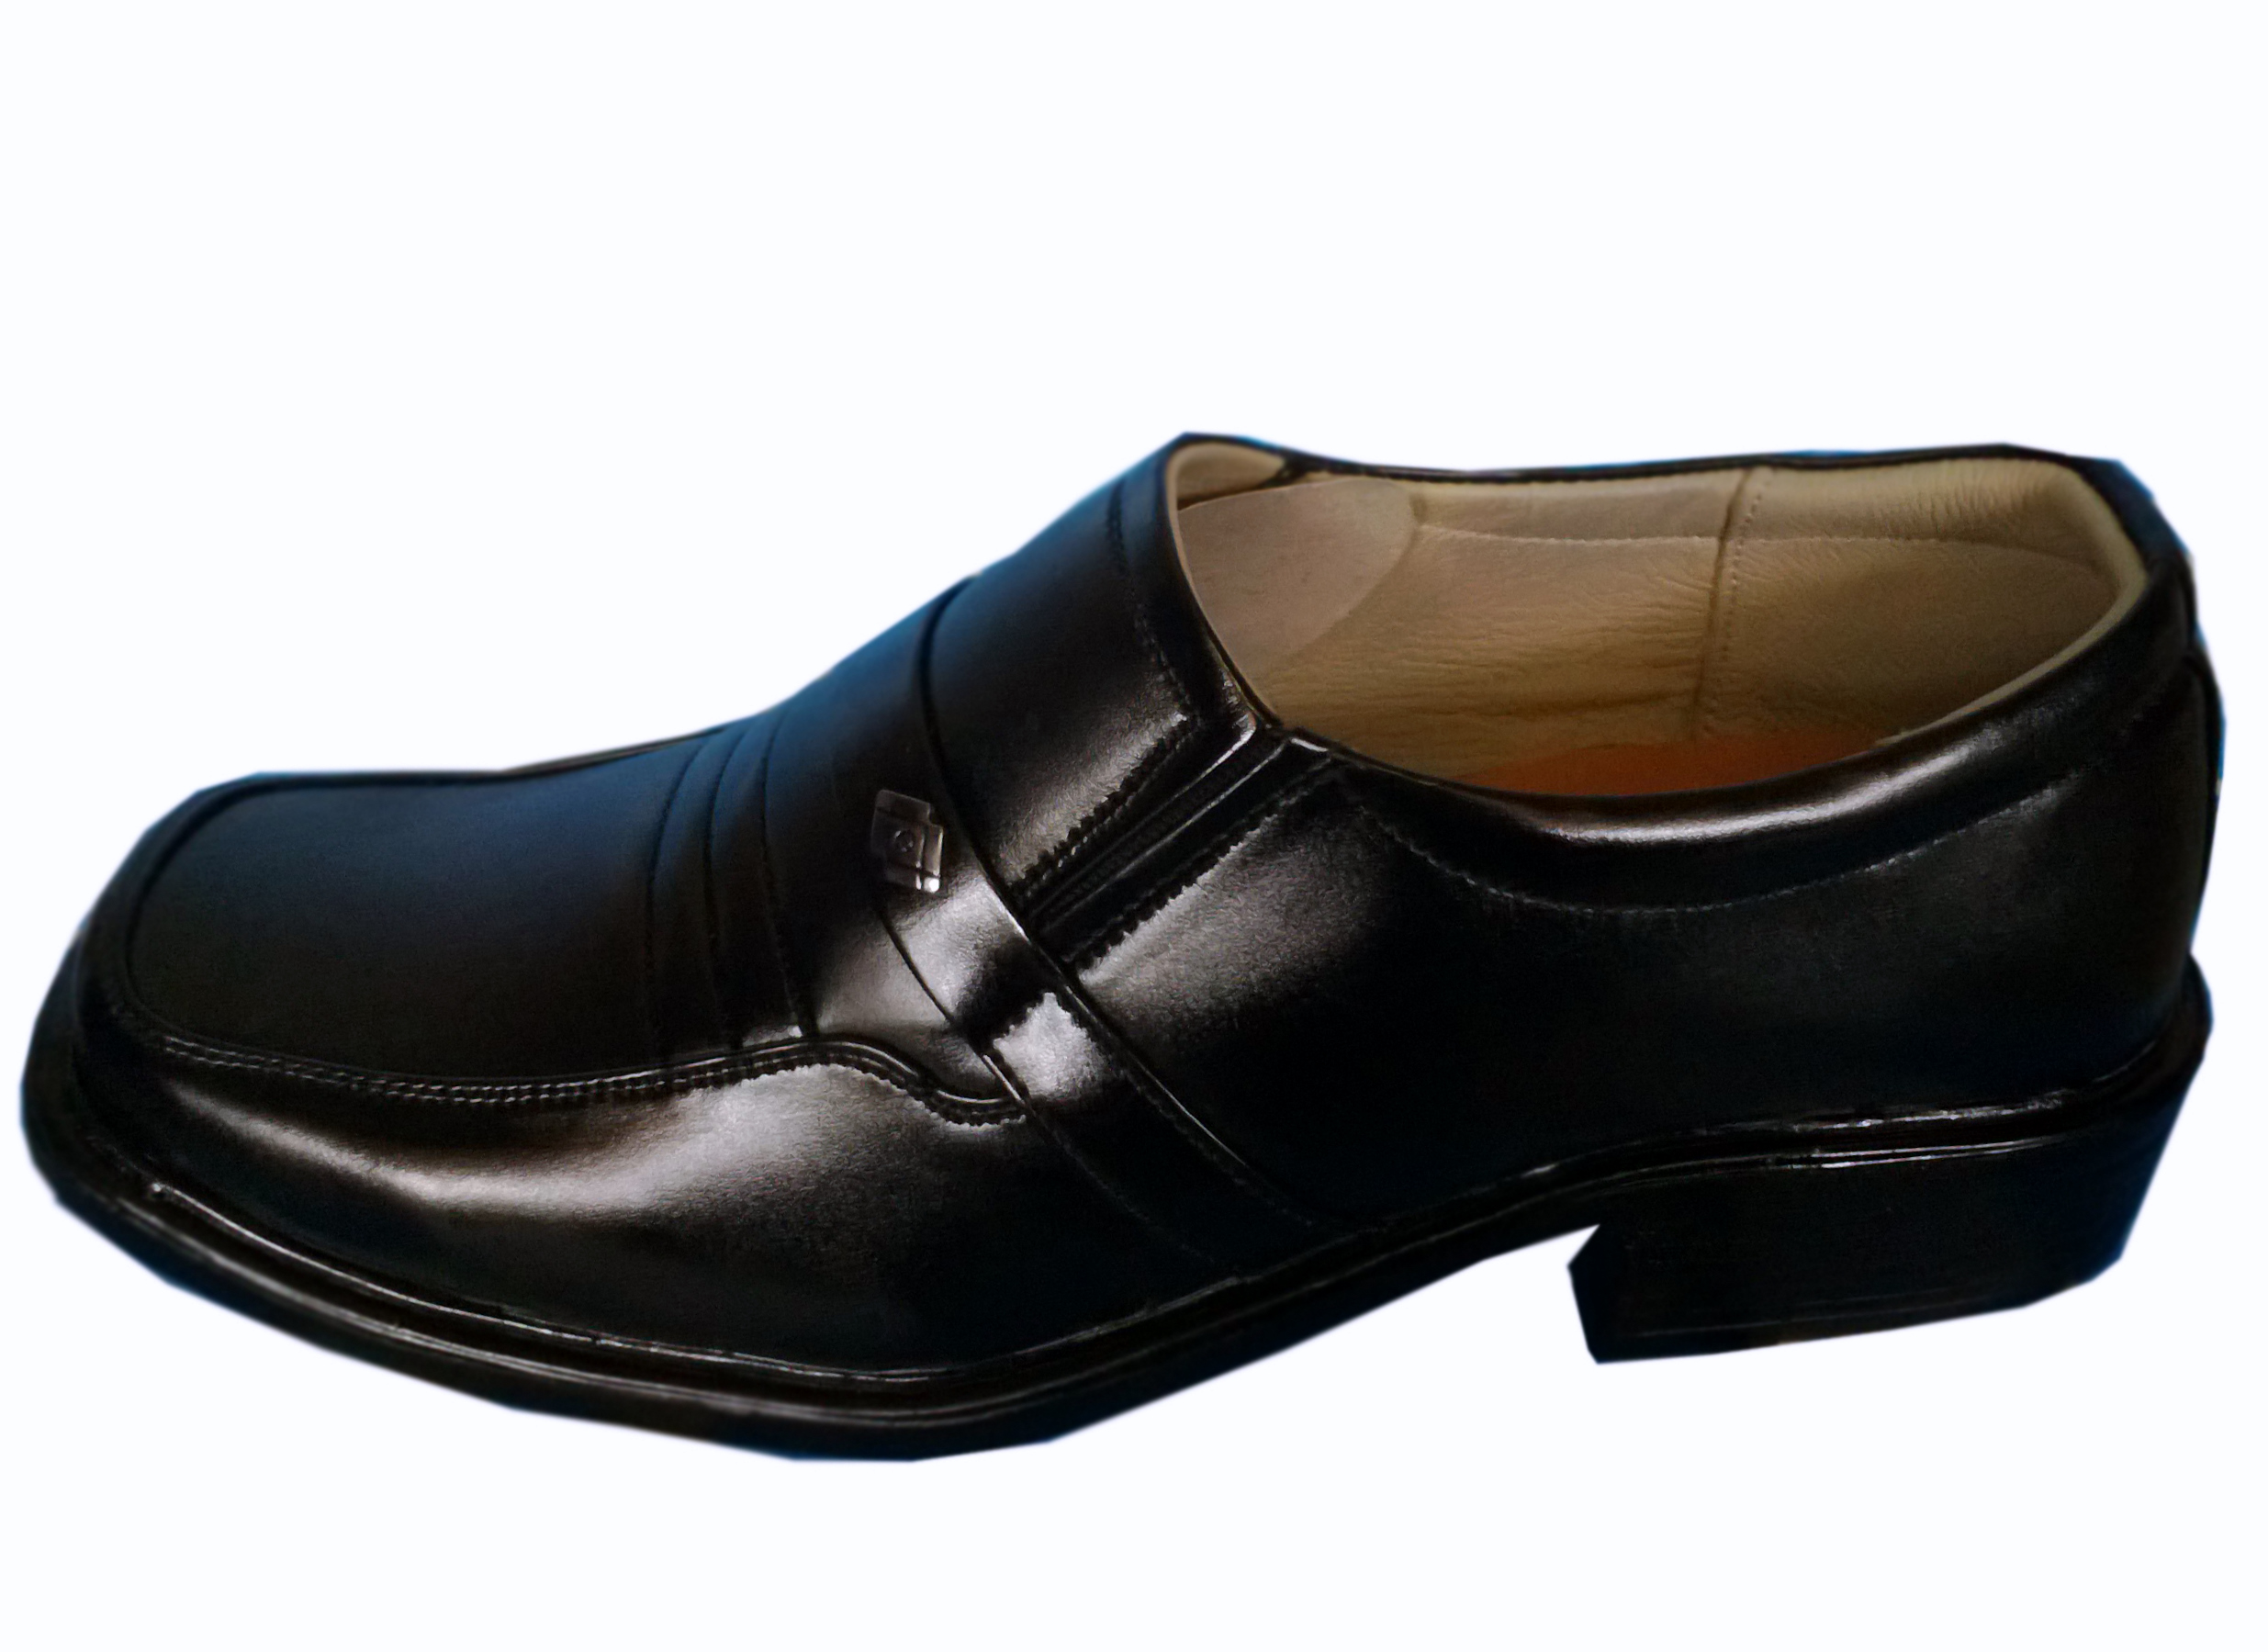 buy formal shoes for office and regular use